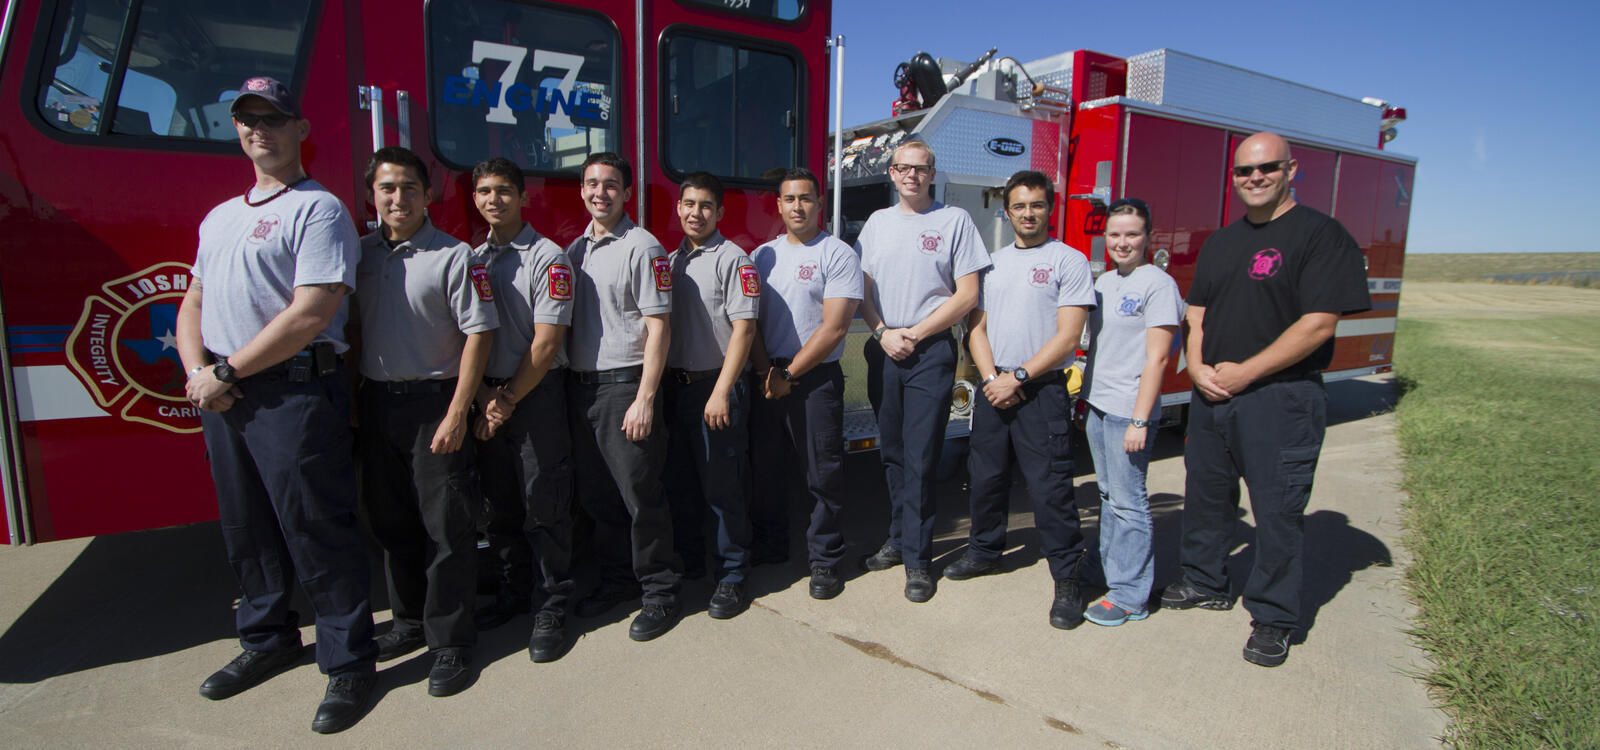 A group of students, matching in gray shirts and dark colored pants, smile as they stand in front of a firetruck